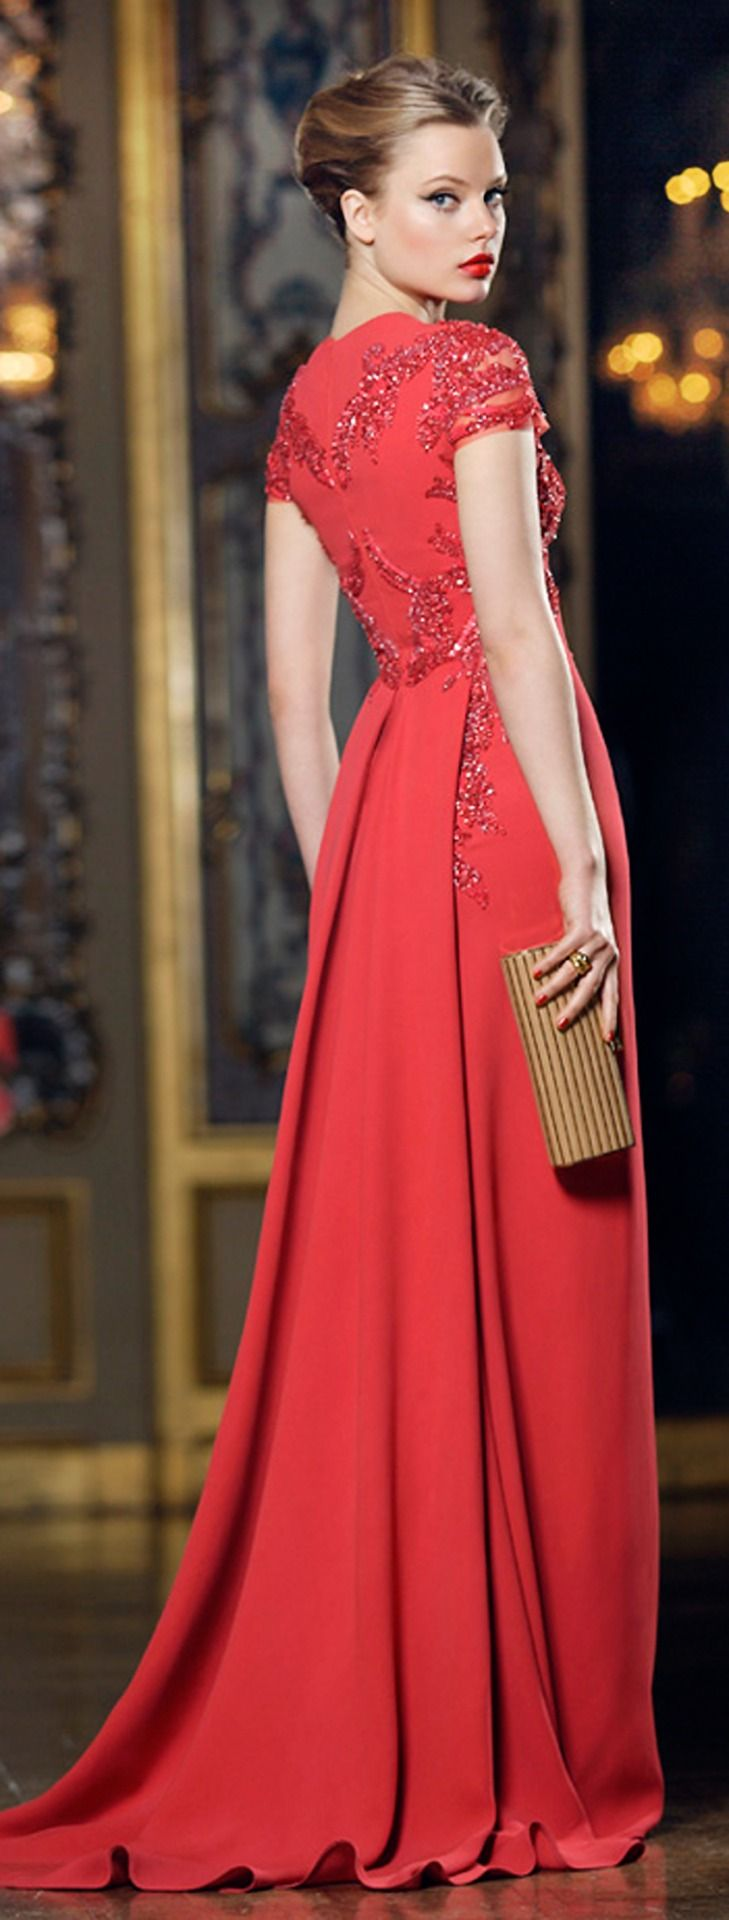 Glamorous evening gown red embellishments fashion pinterest